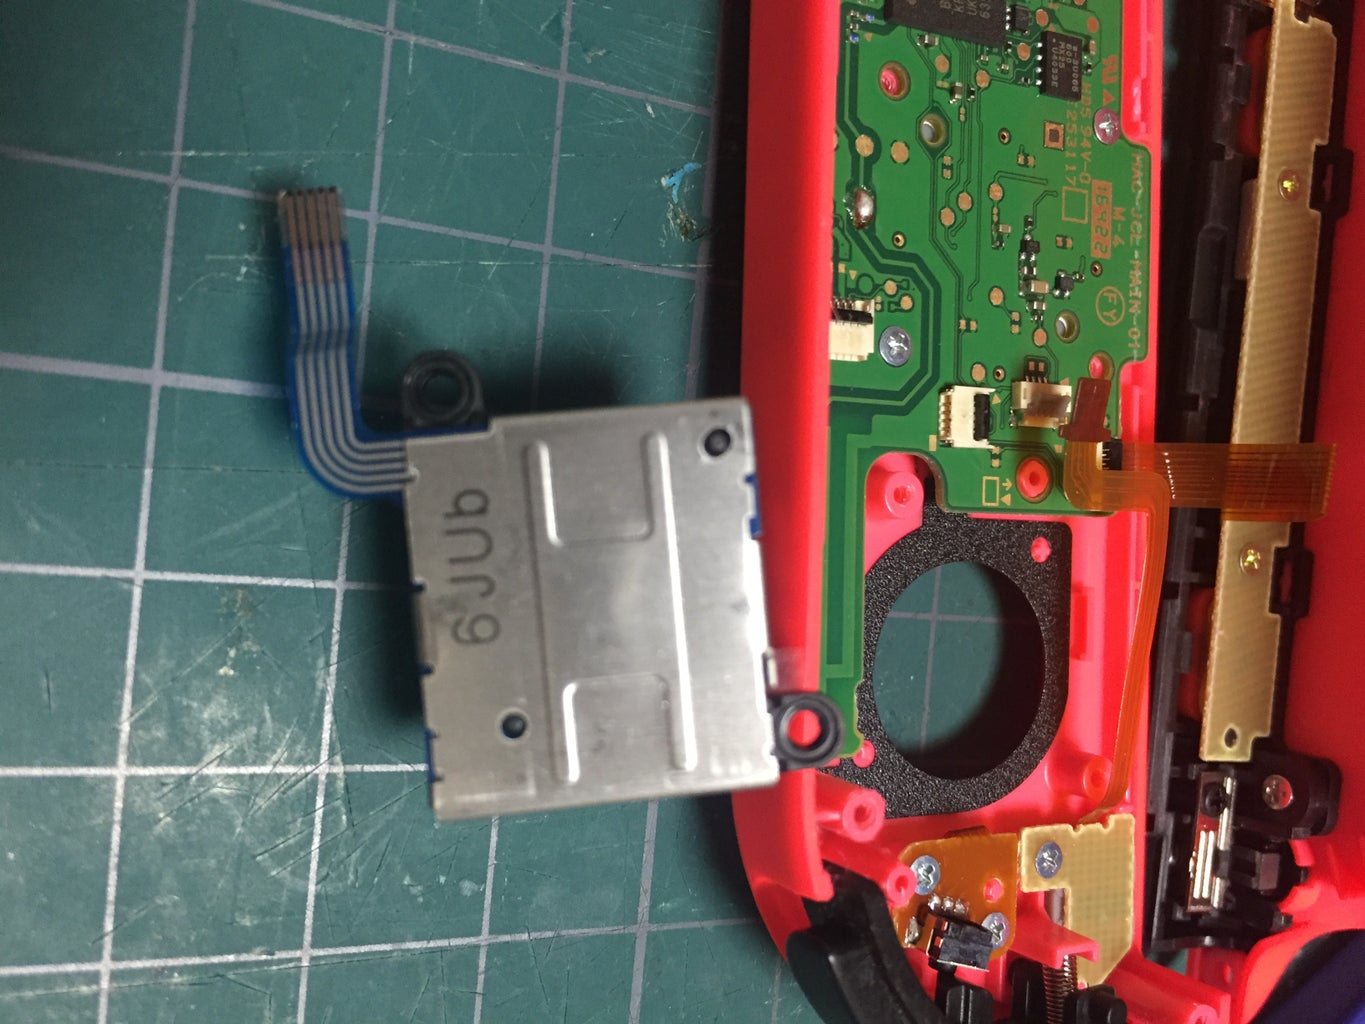 Removing Ribbon Cables to Access the Analog Stick